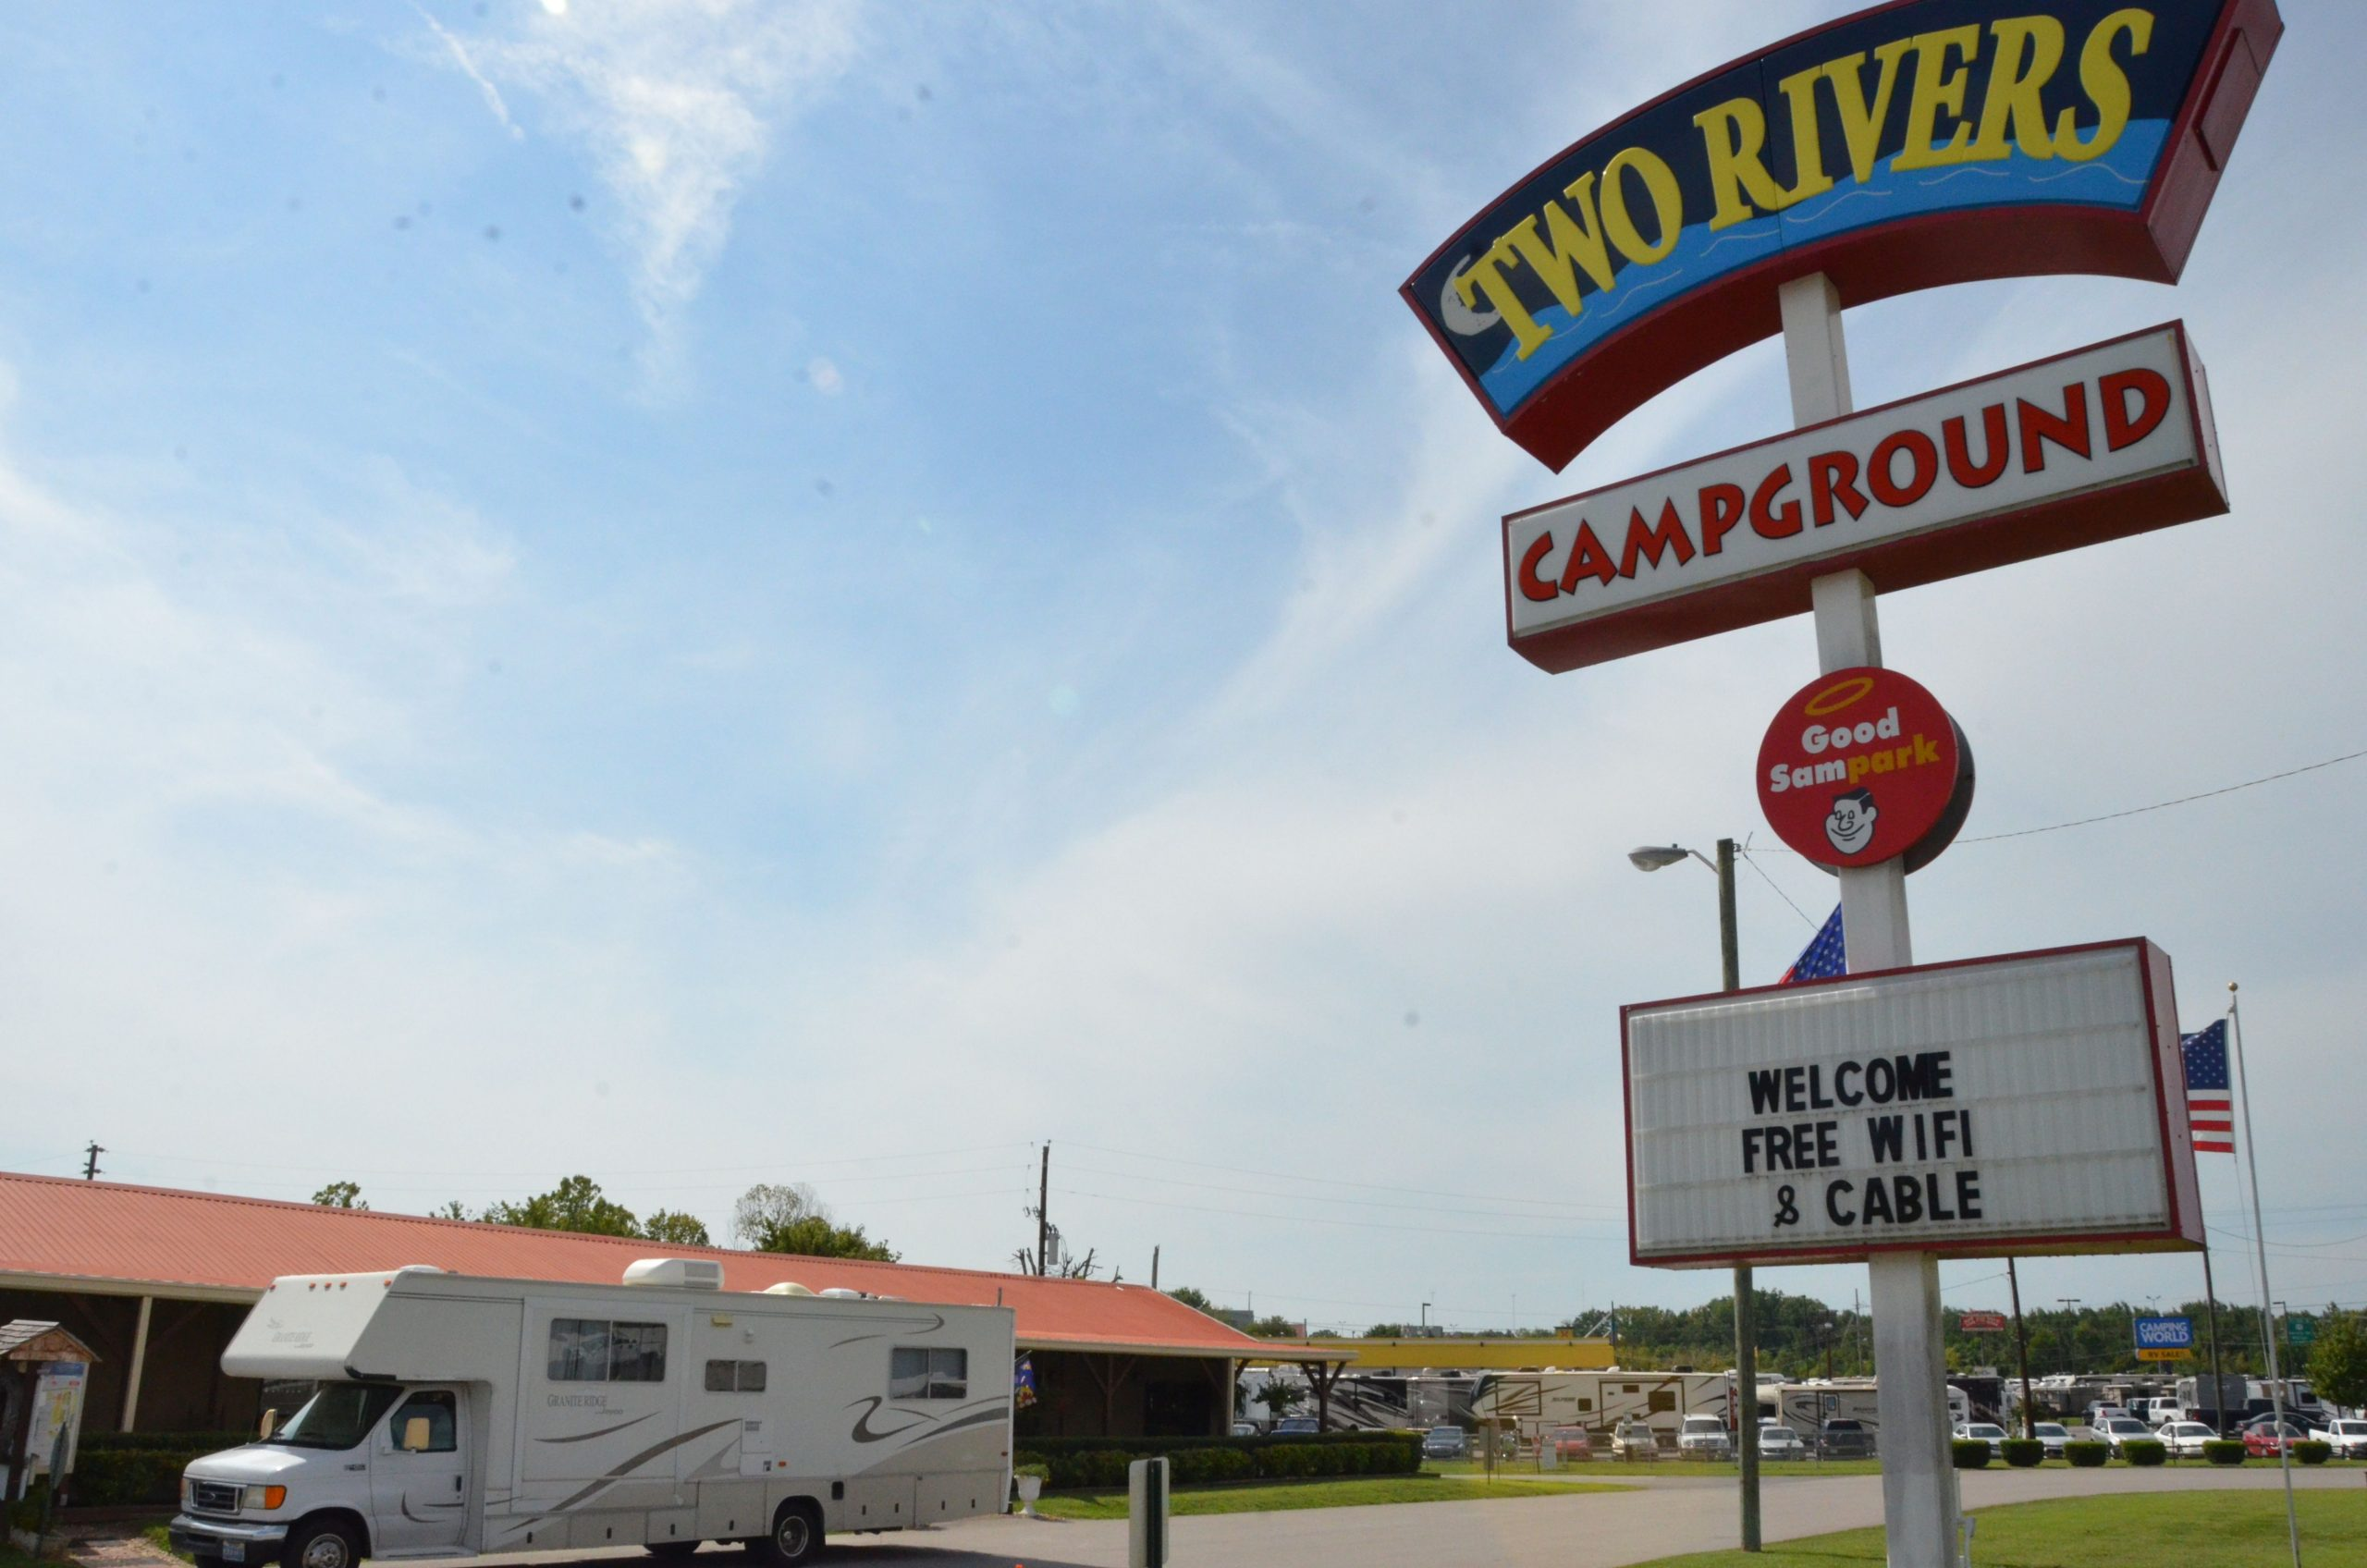 Two Rivers Campground sign